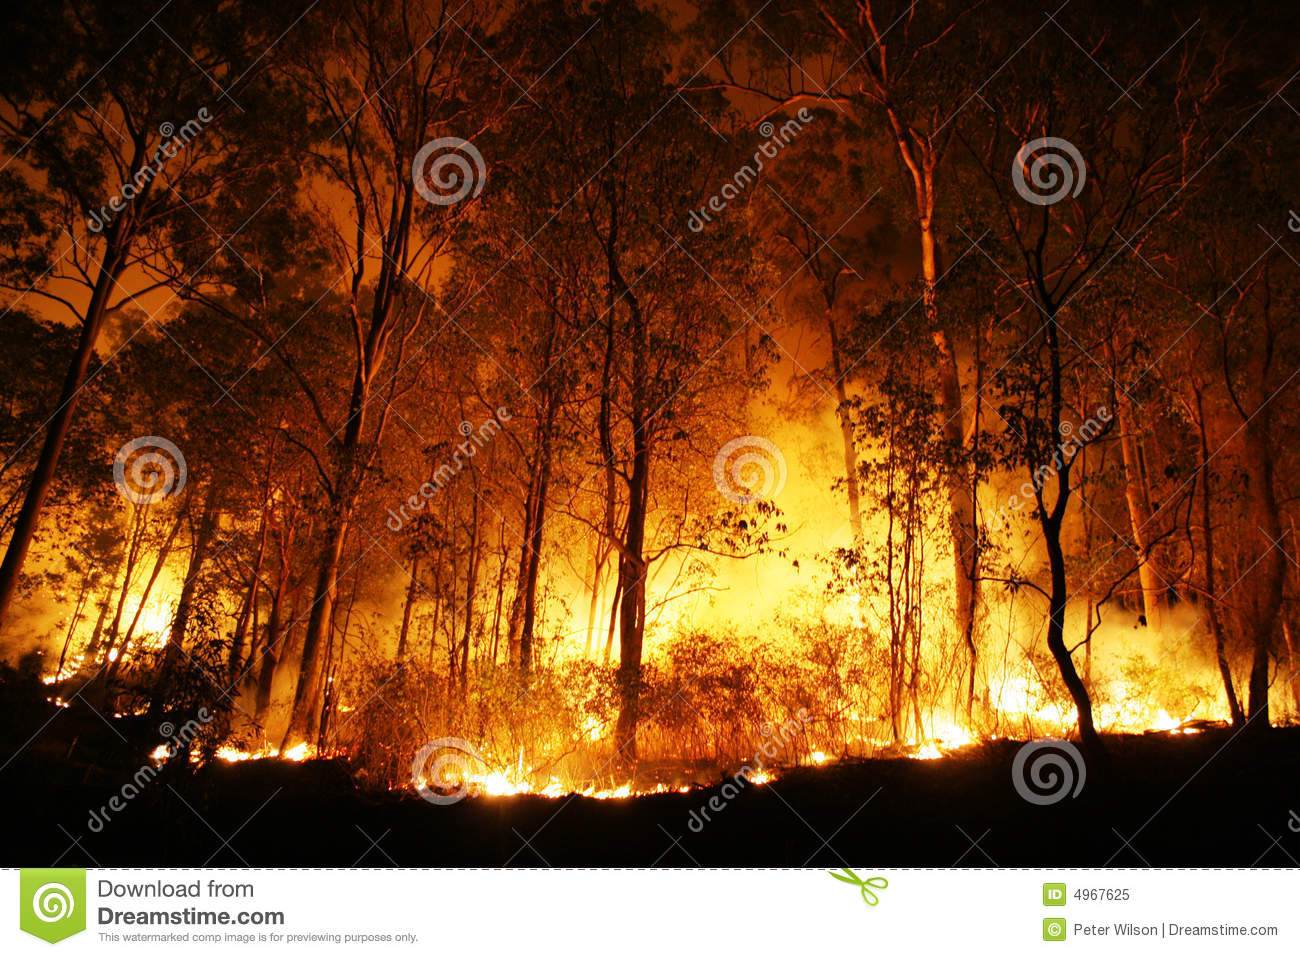 Forest Ablaze at Night